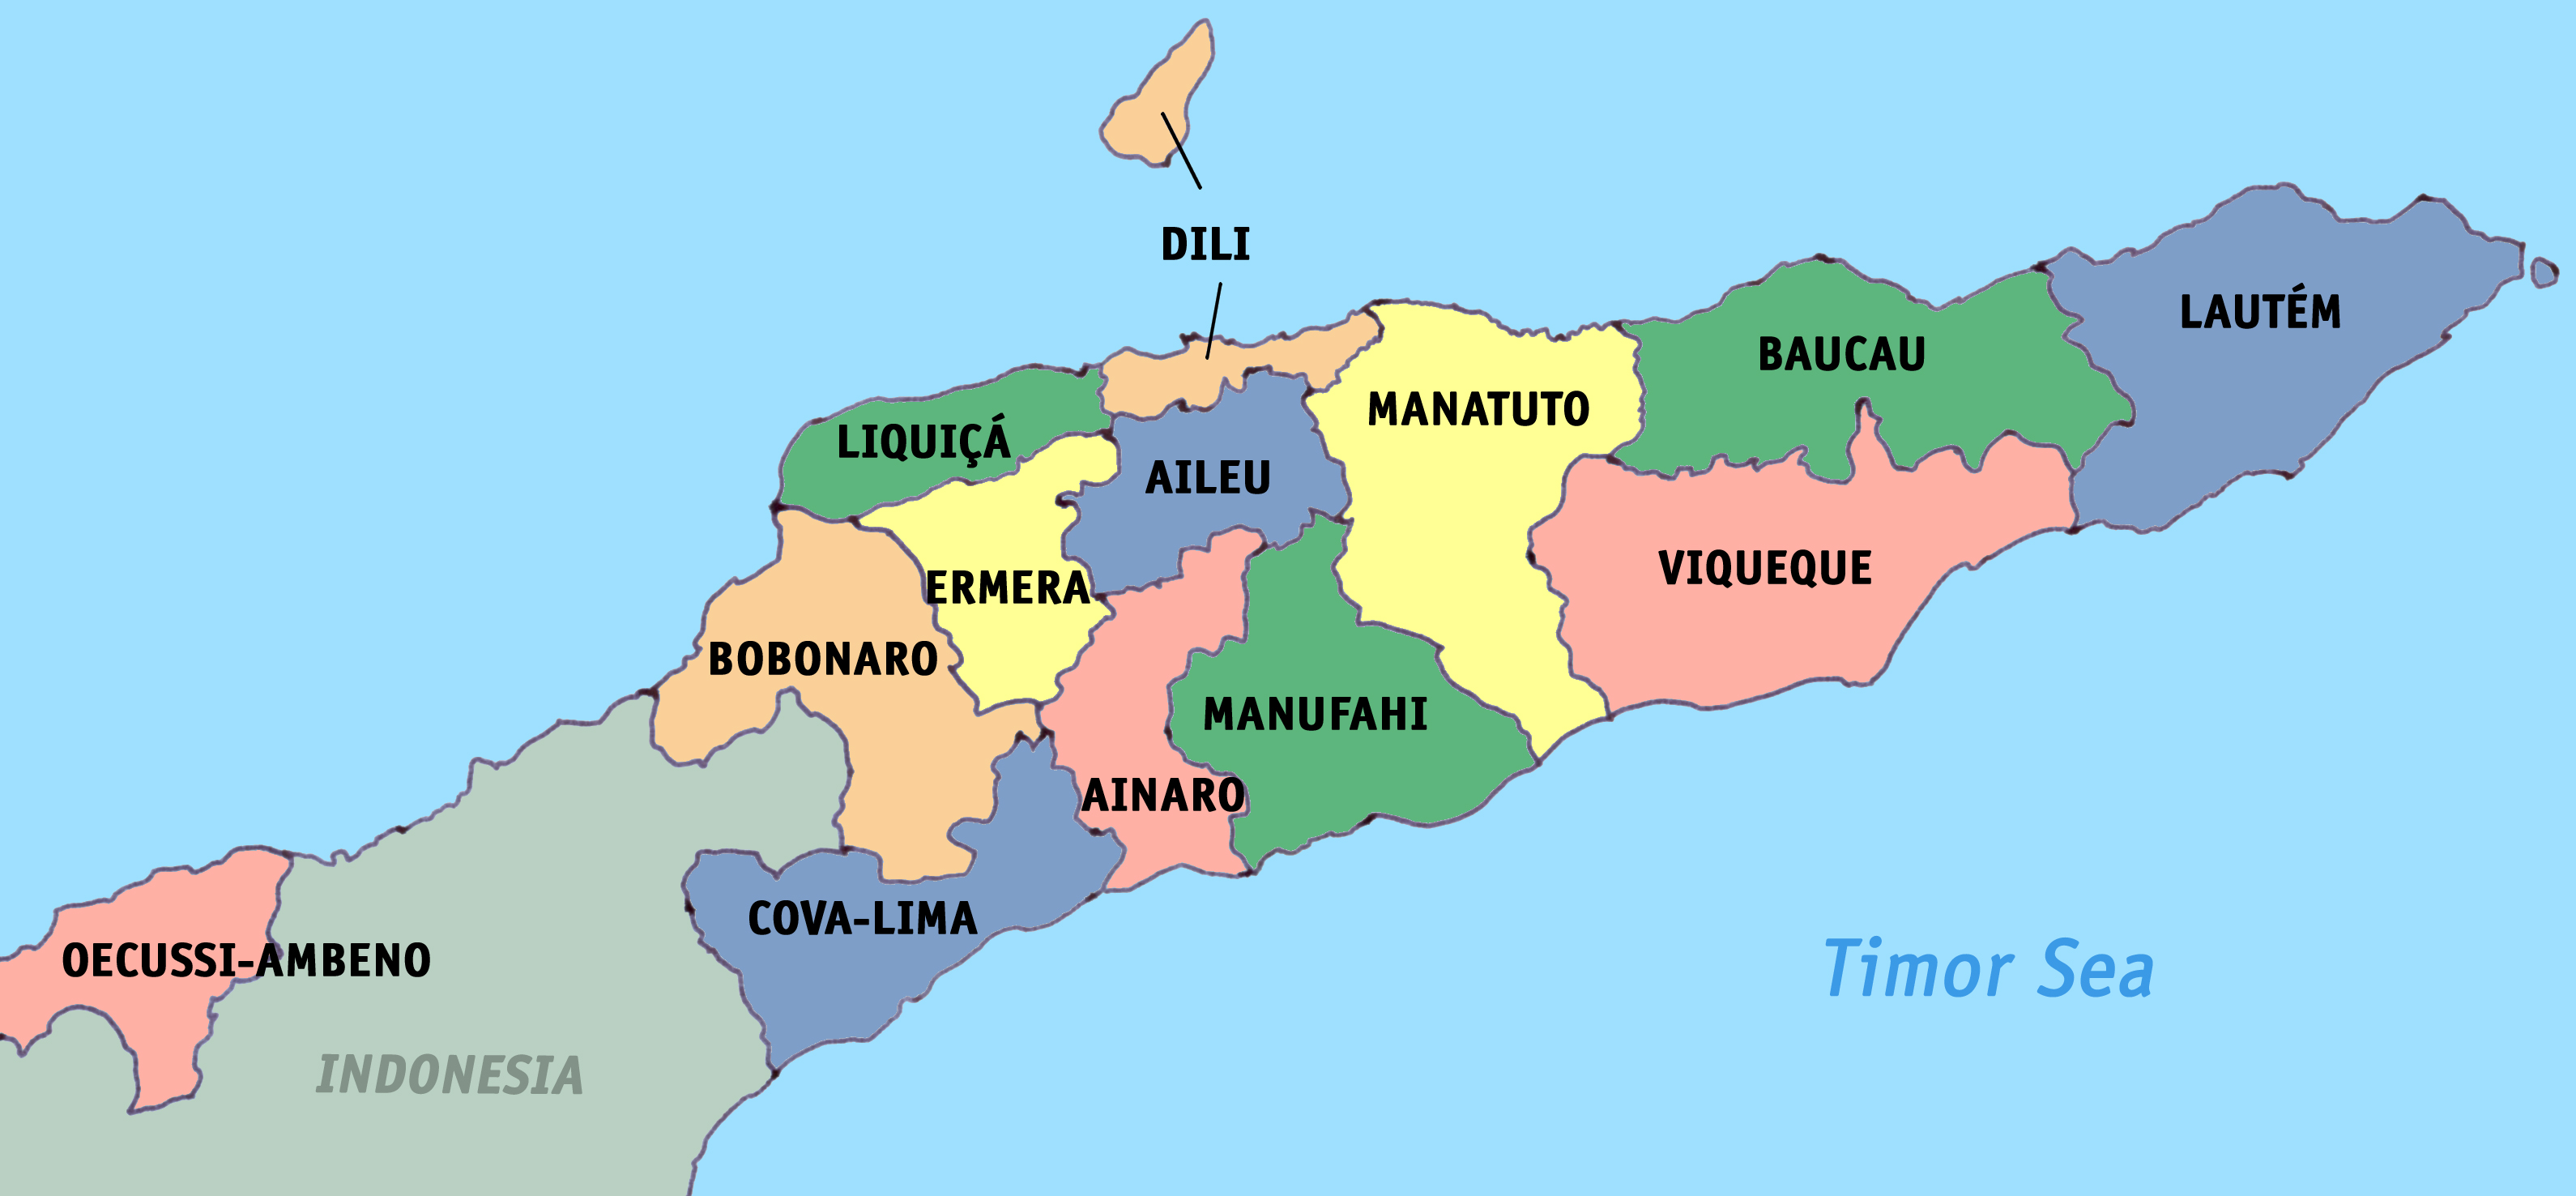 Maps of East Timor | Detailed map of East Timor (Timor Leste) in